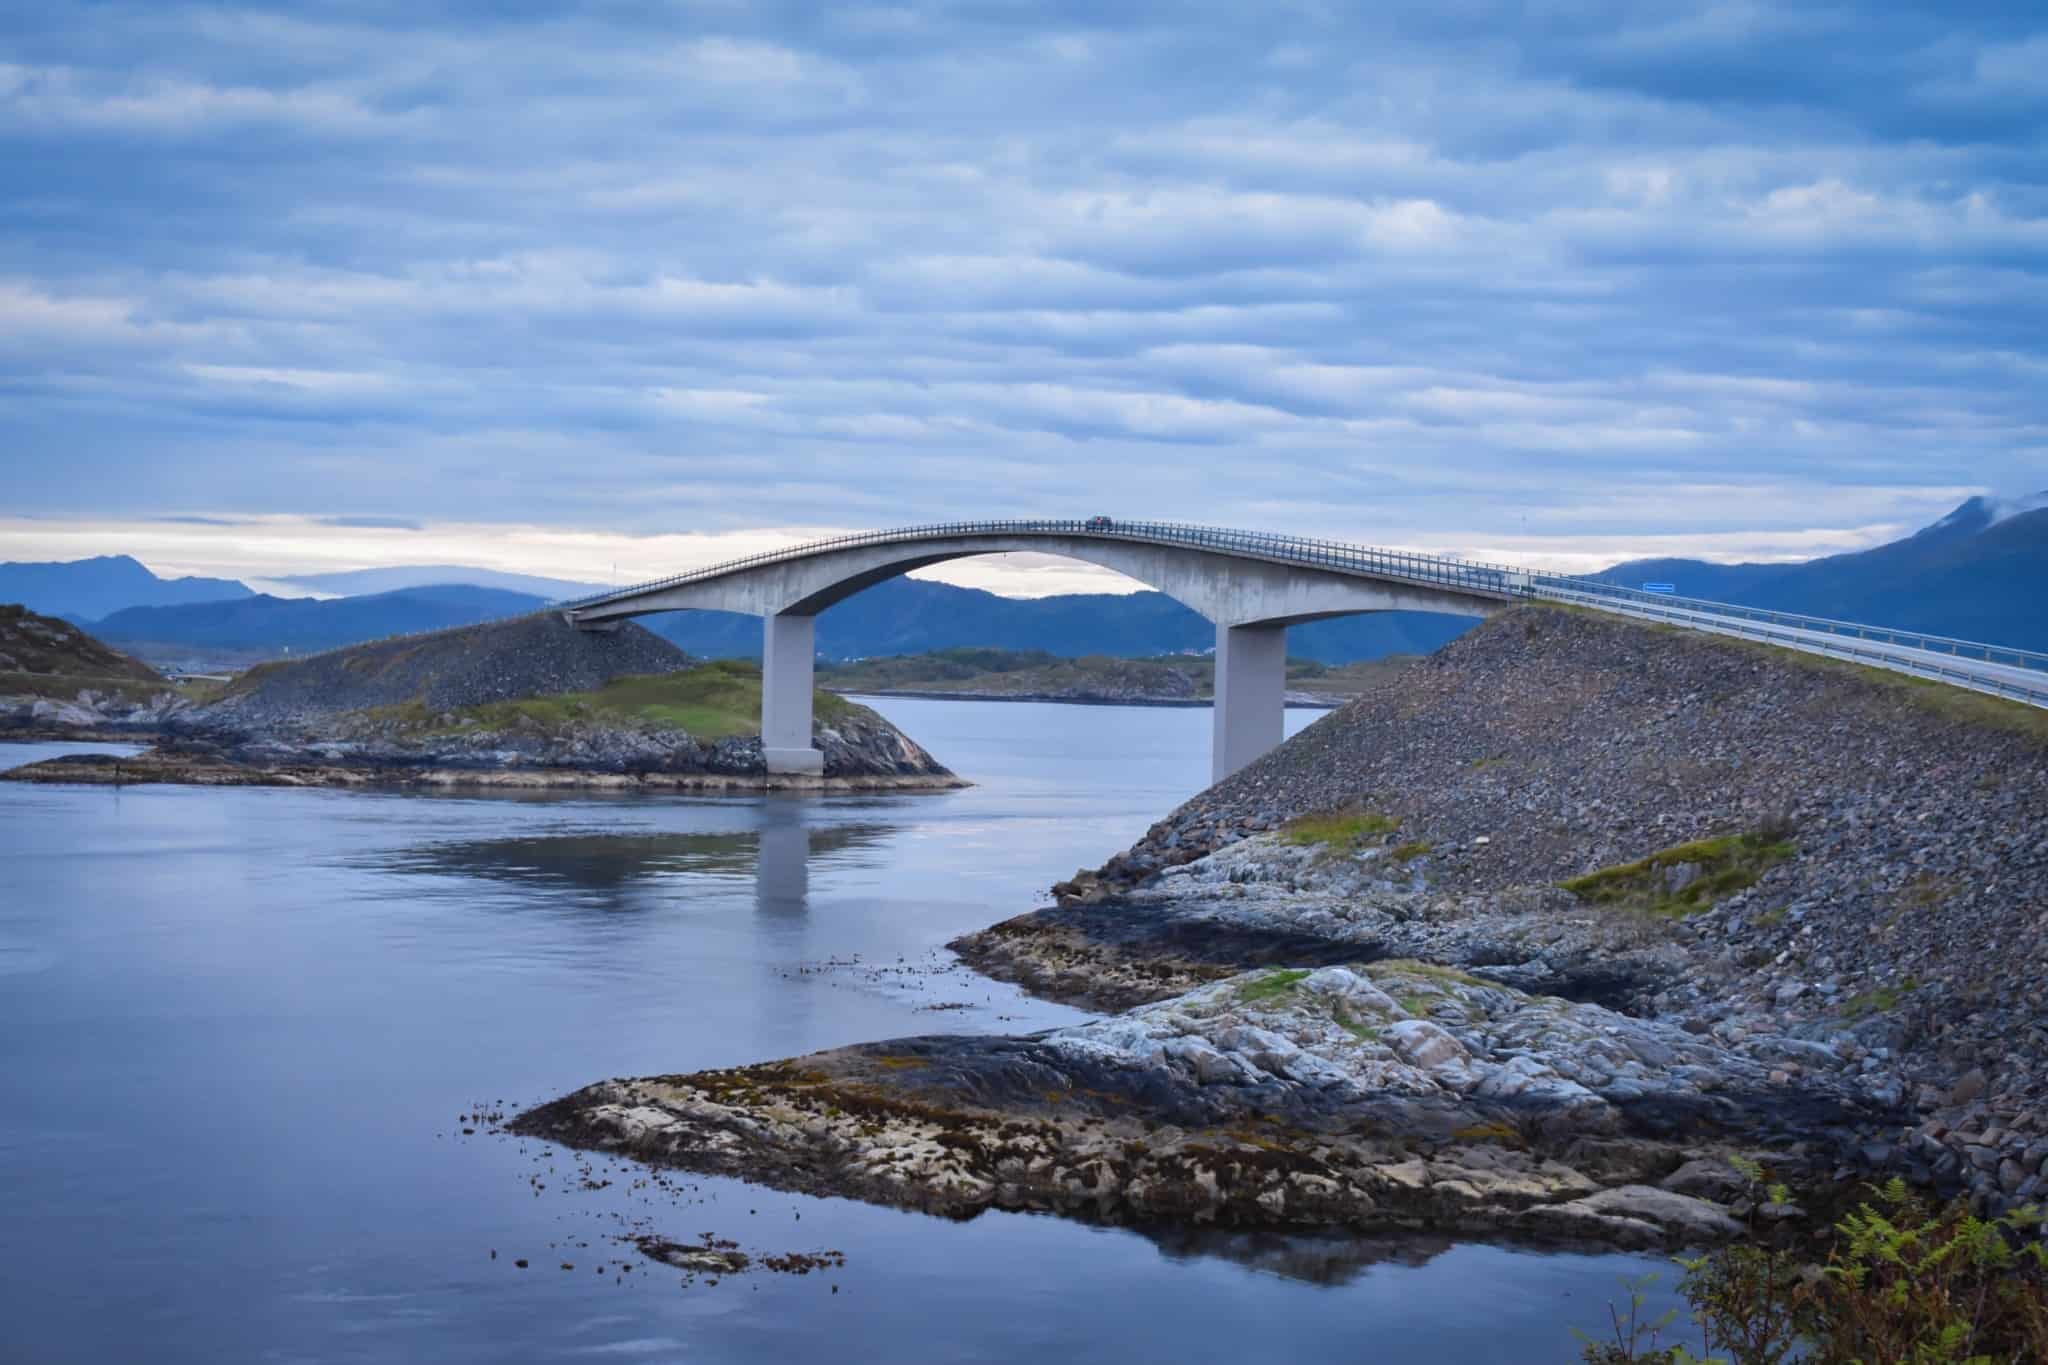 Sharp bends and wild landscapes make the Atlantic road, Atlantic road, or Atlanterhavsveien in Norwegian, one of Norway's most visited tourist attractions.